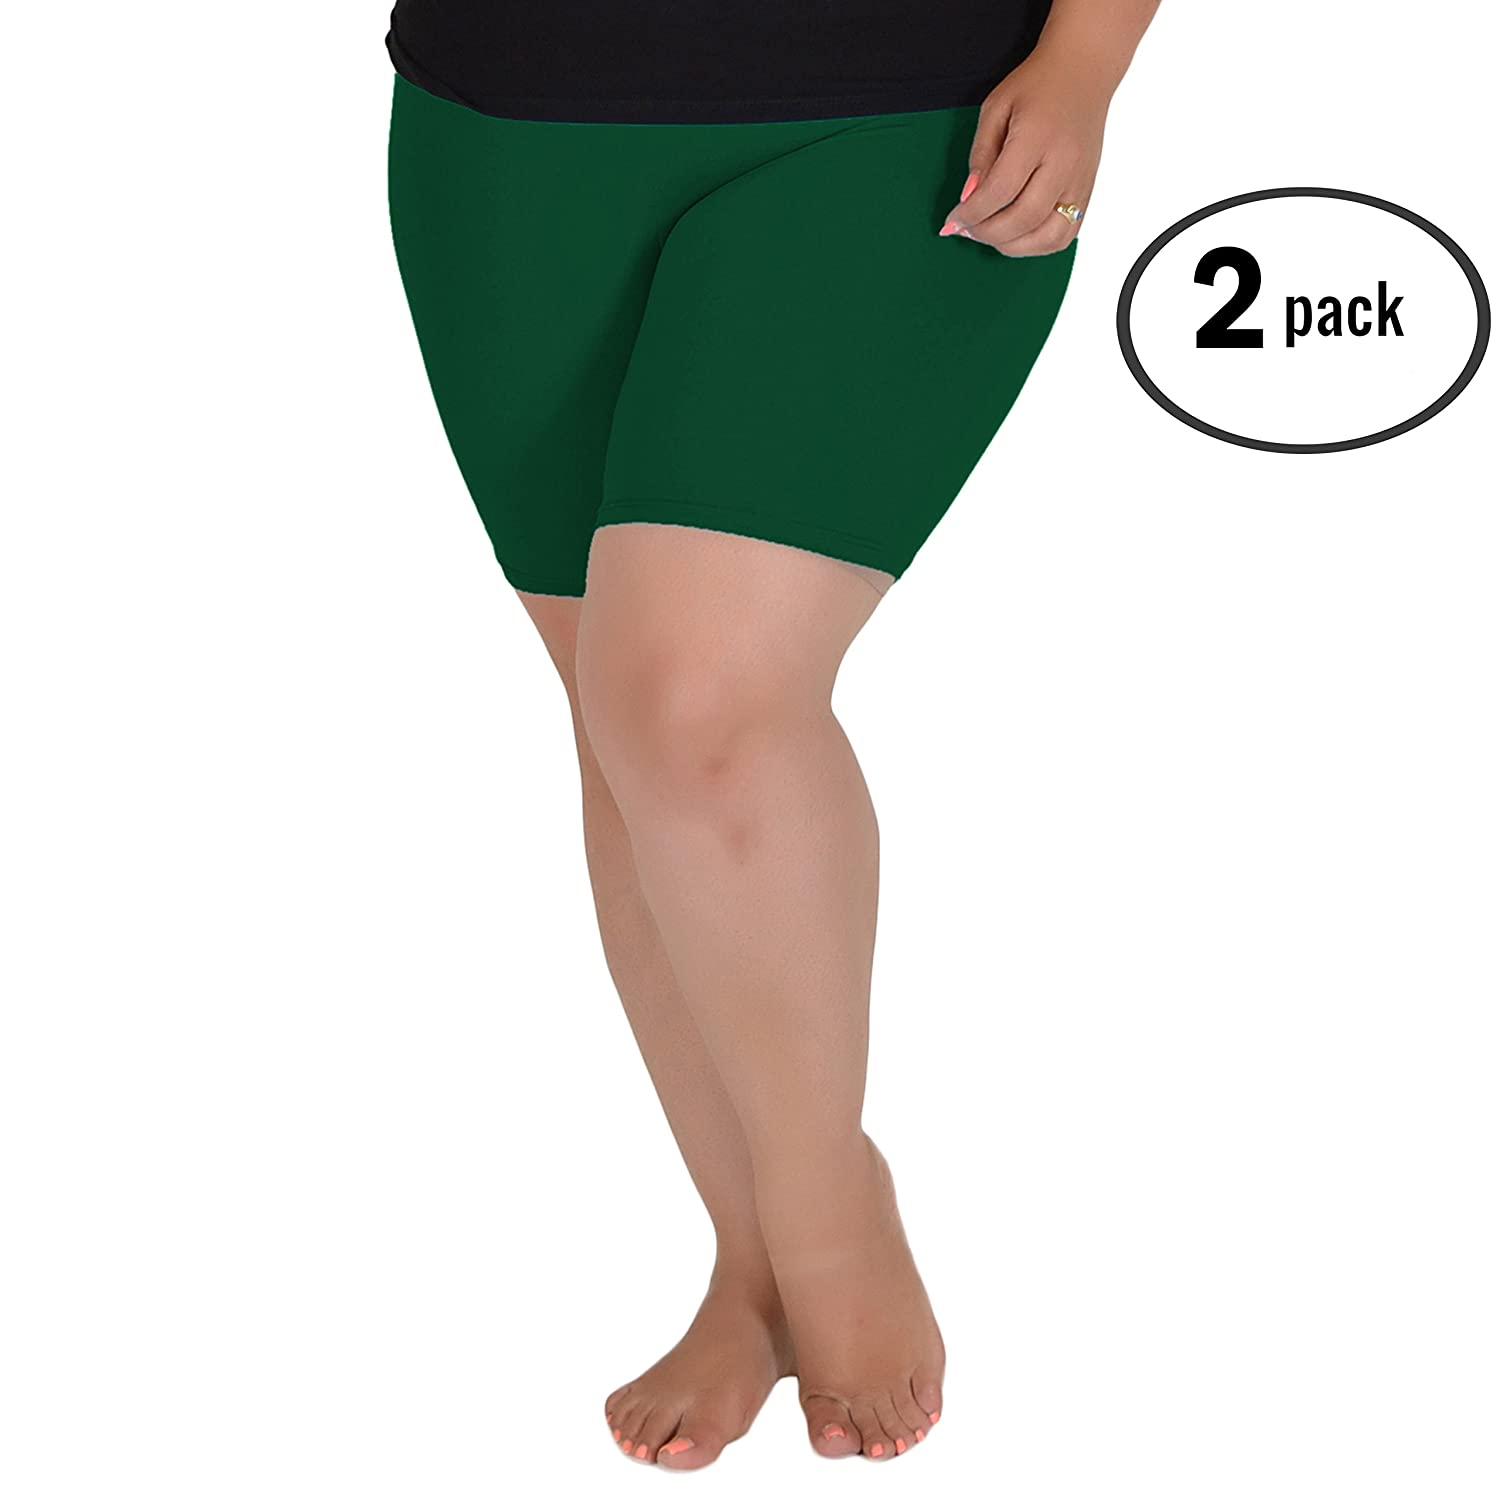 Stretch is Comfort Women's Pack of 2 Cotton Plus Size Bike Shorts L3004PS2PCK-$P